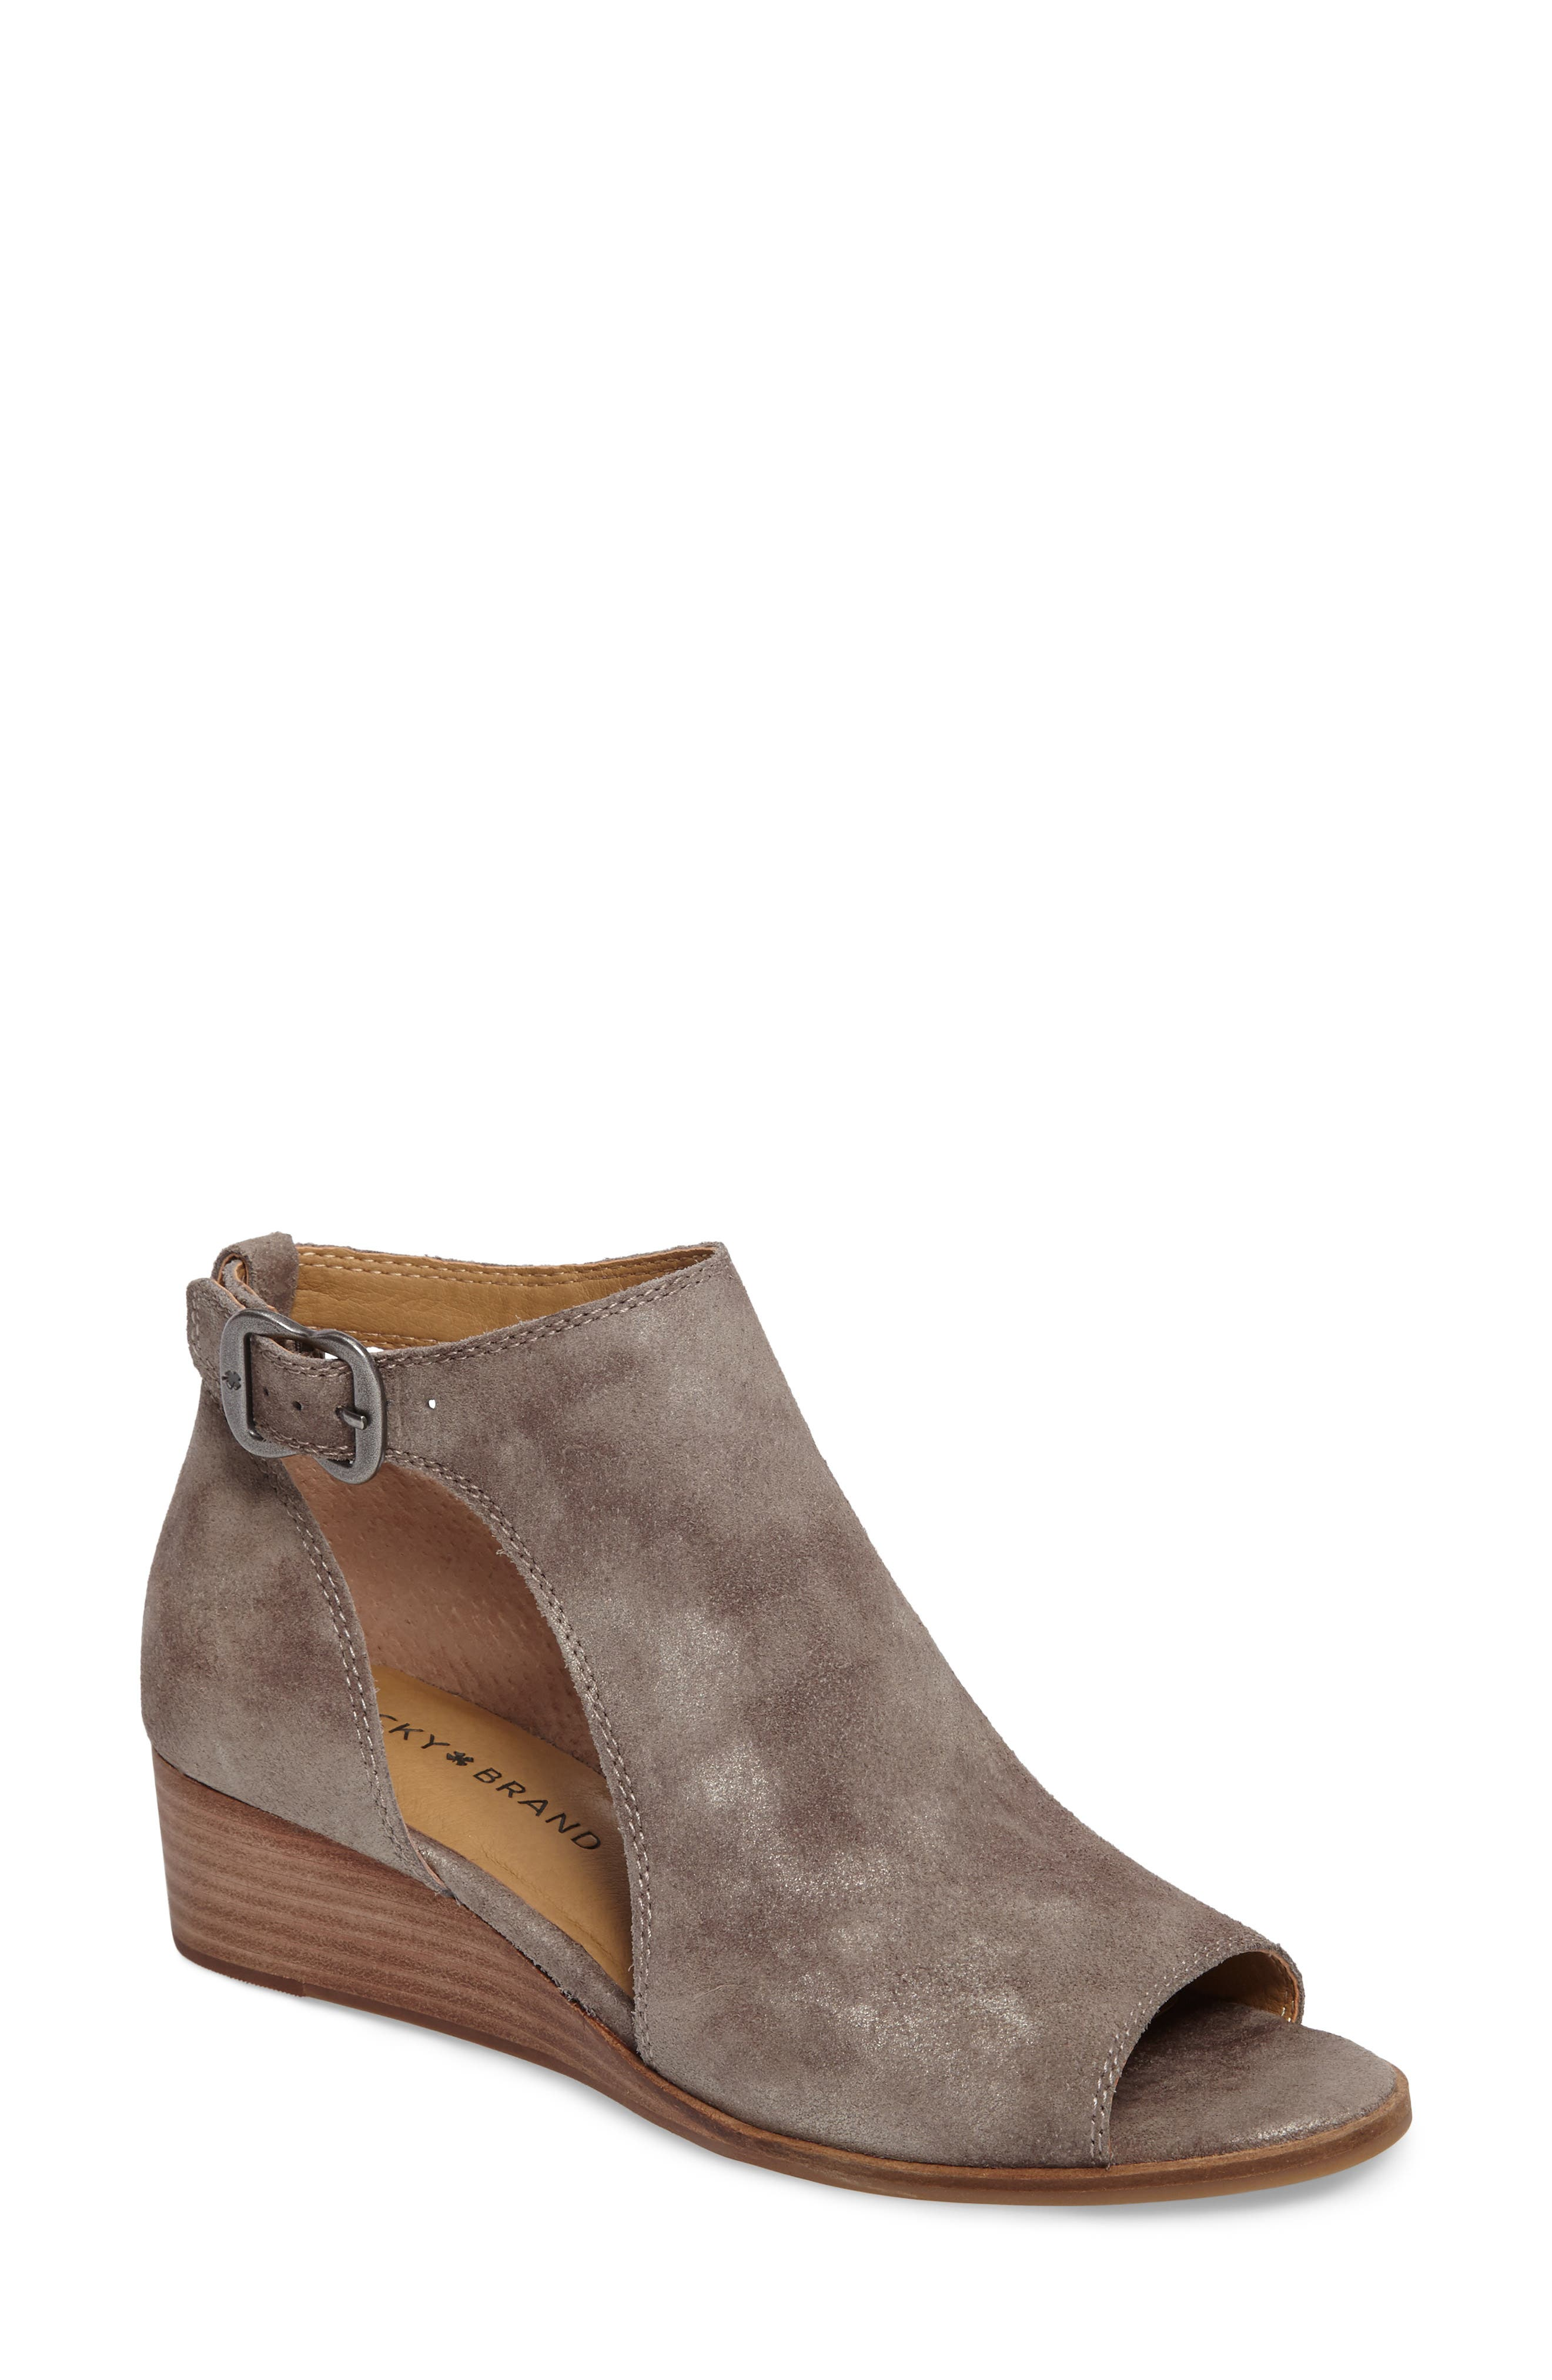 Alternate Image 1 Selected - Lucky Brand Rixanne Cutout Bootie (Women)